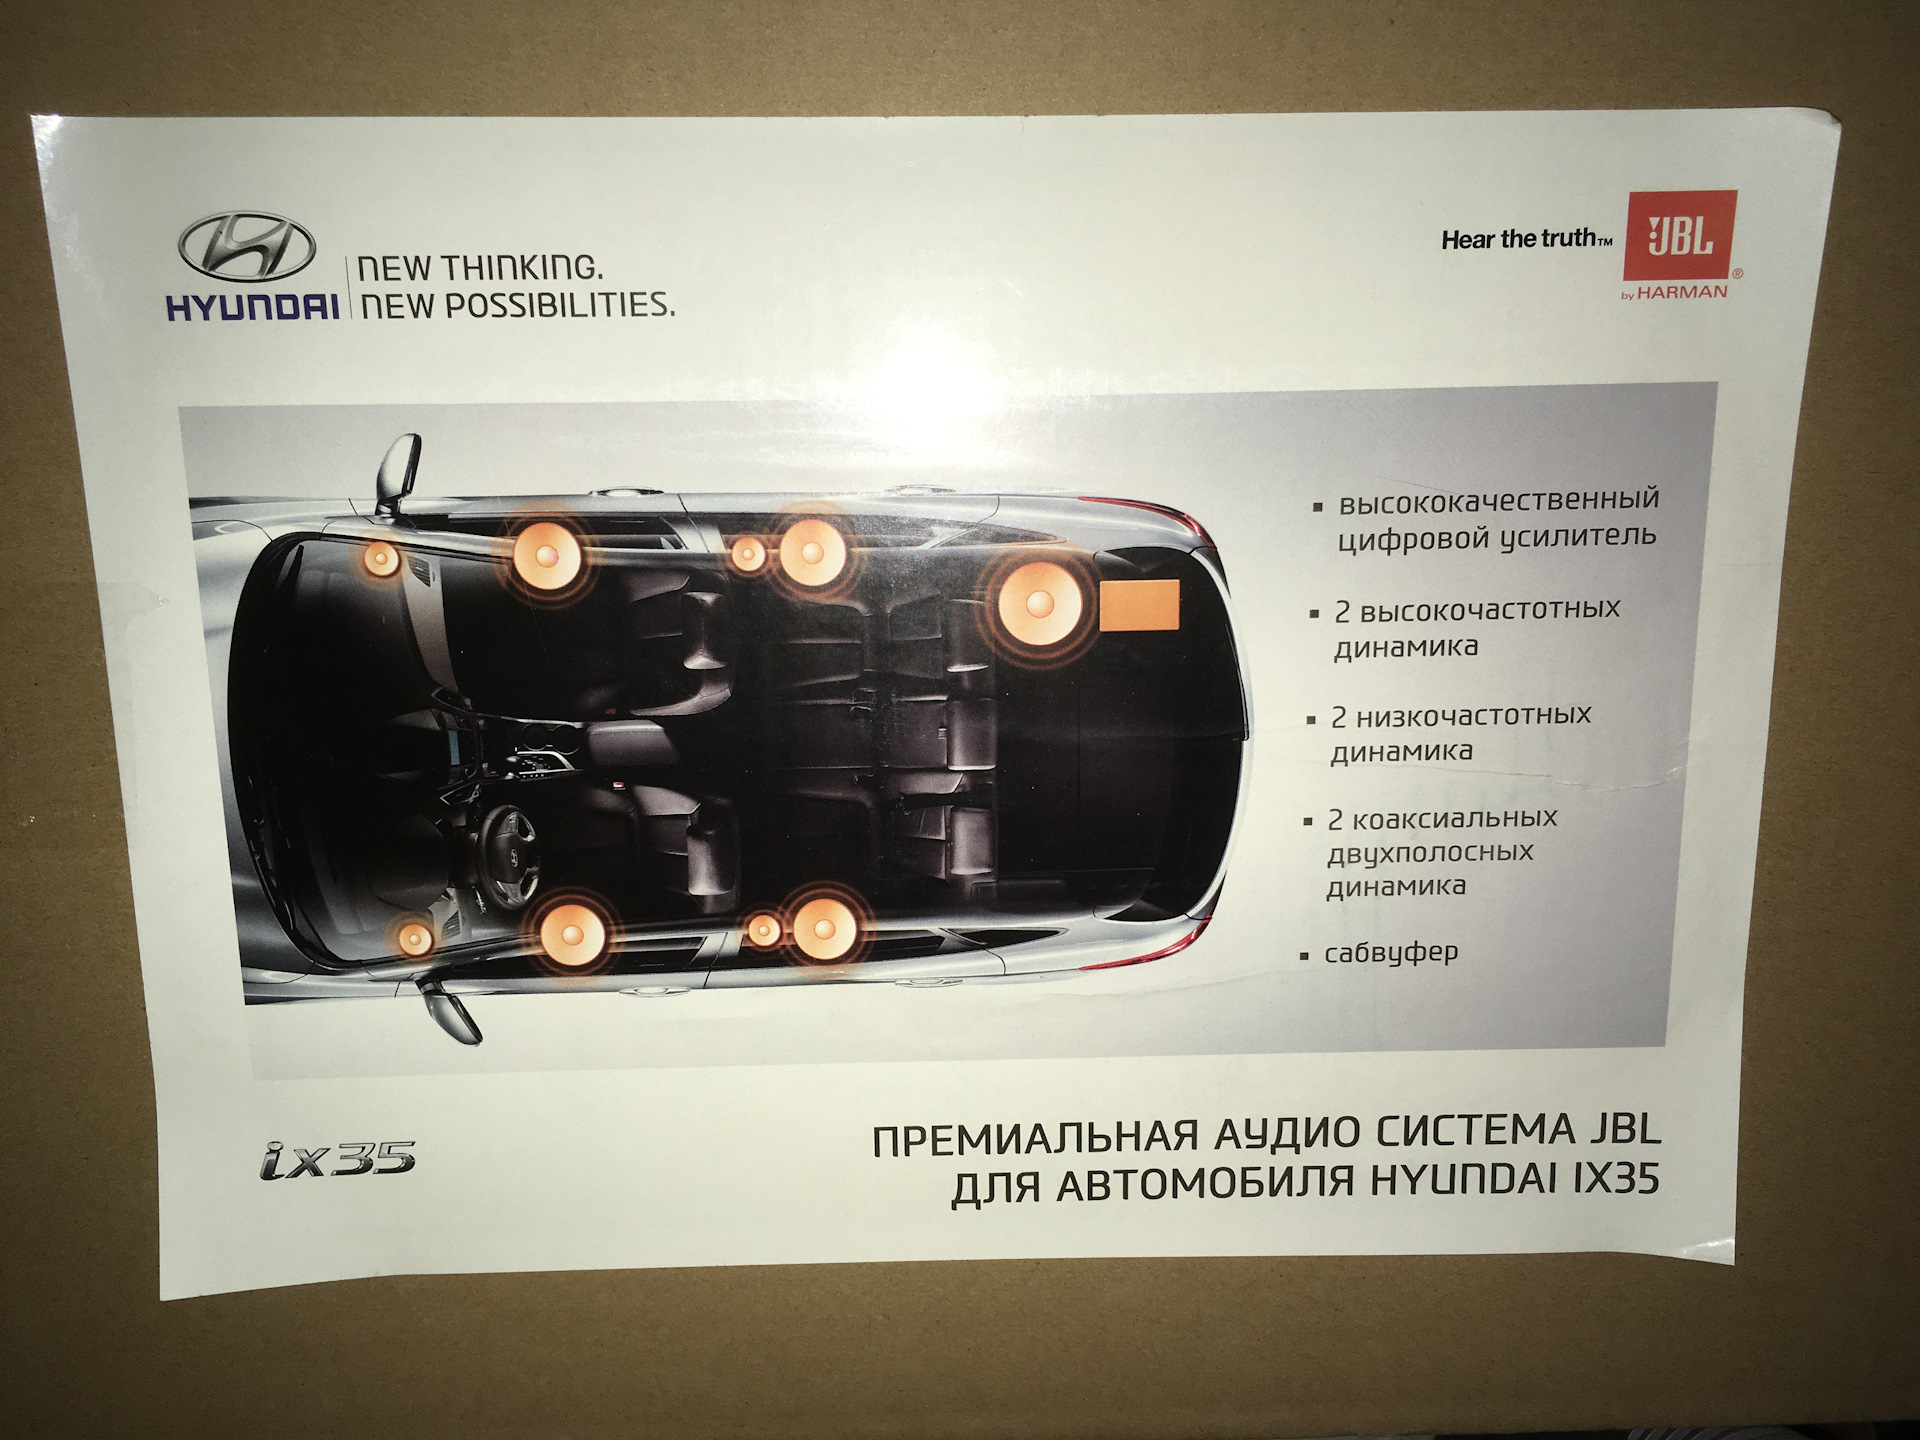 Audio System Jbl From Hyundai Ix35 Logbook Kia Cerato 2013 On Drive2 Wiring Diagram Of Course Before Buying I Studied The Diagrams For A Long Time Trying To Compare And Internet Information Is Very Small